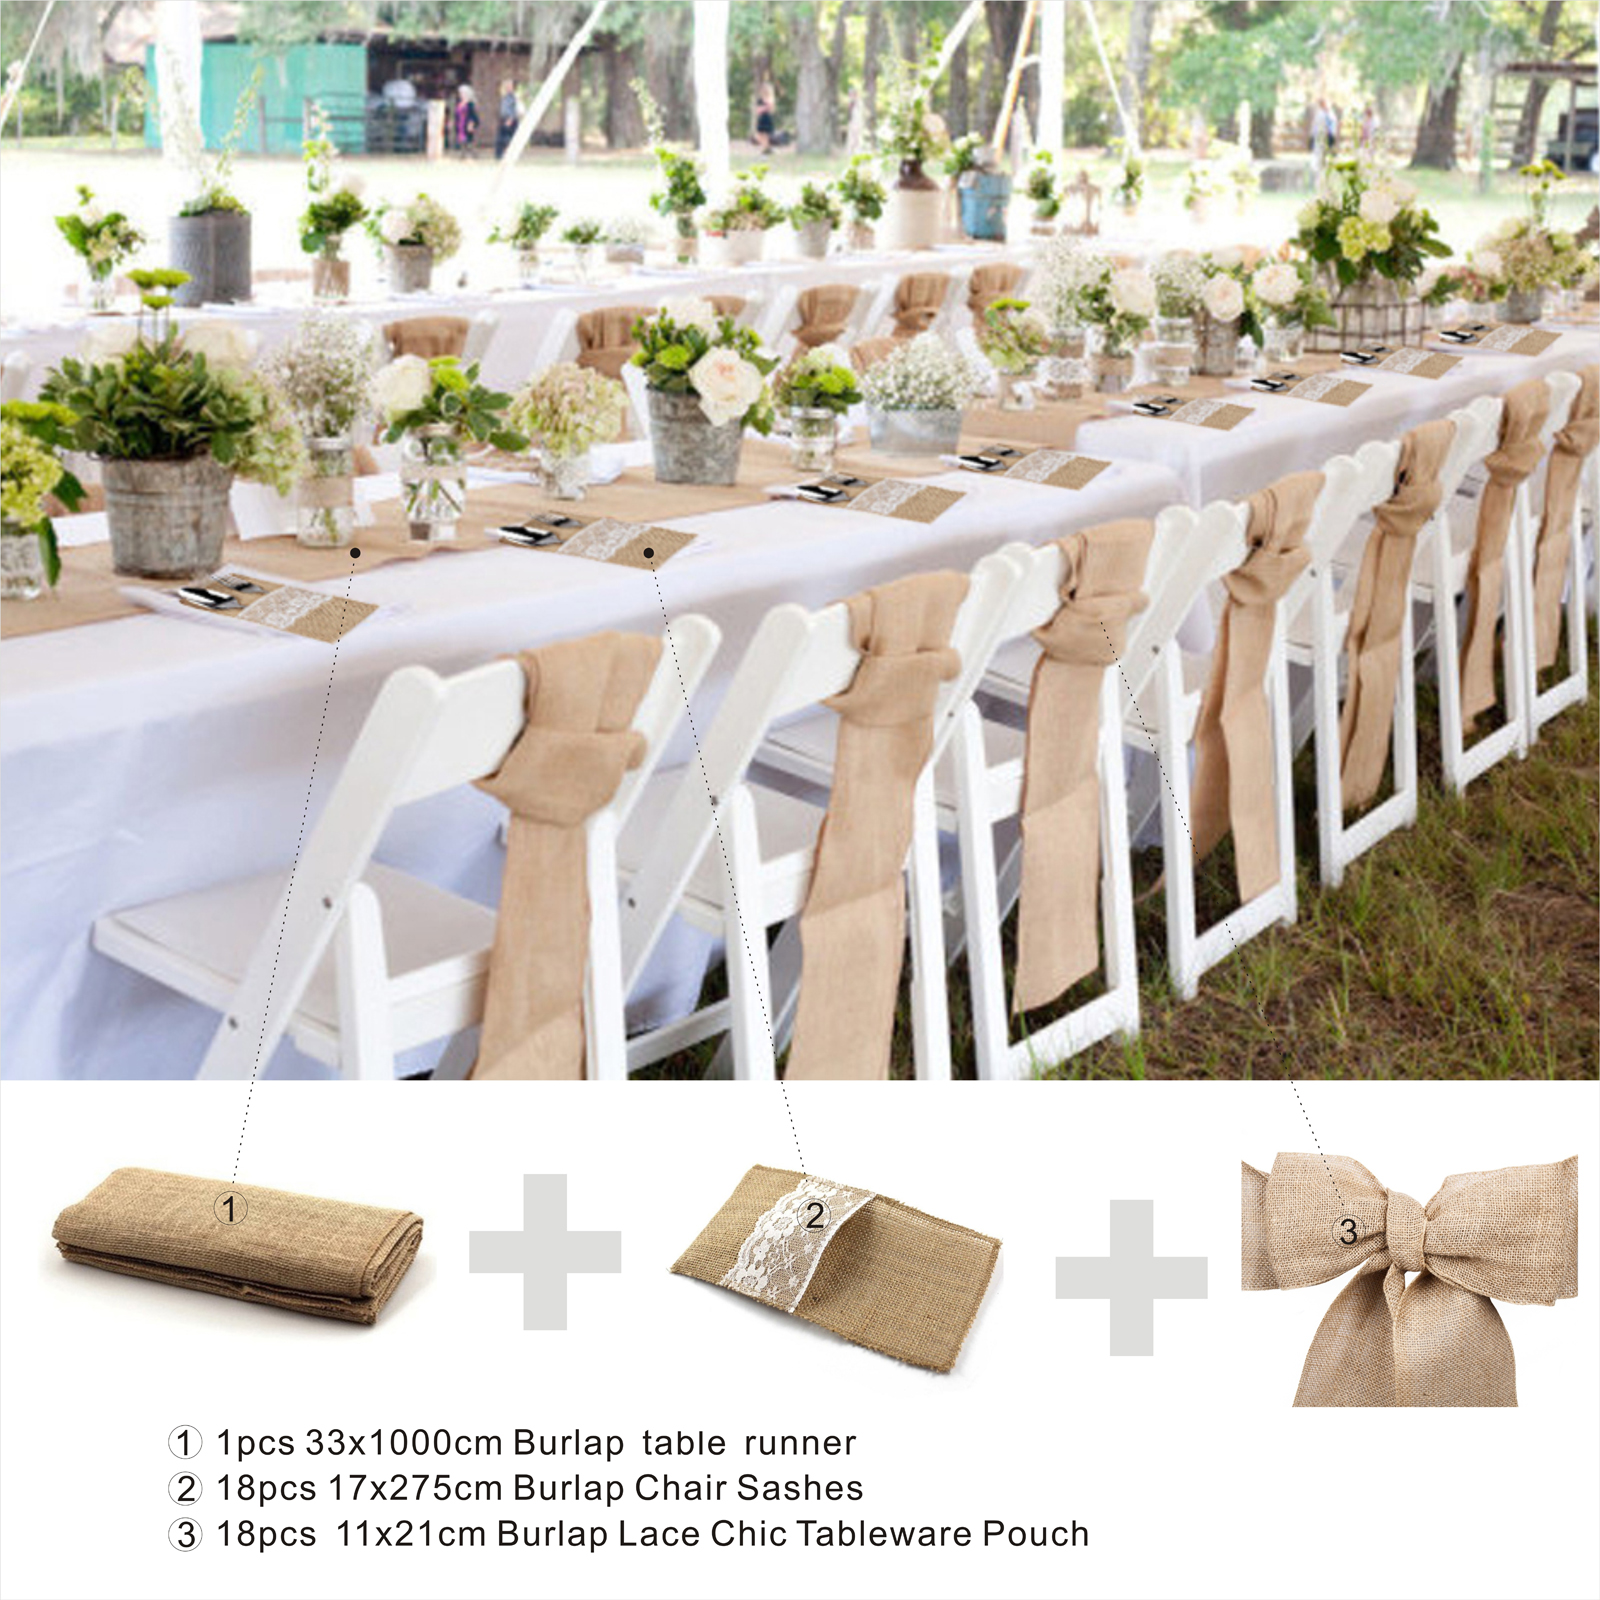 Burlap Chair Covers For Folding Chairs Orange Modern Sashes Cover Jute Tie Bow Table Runner